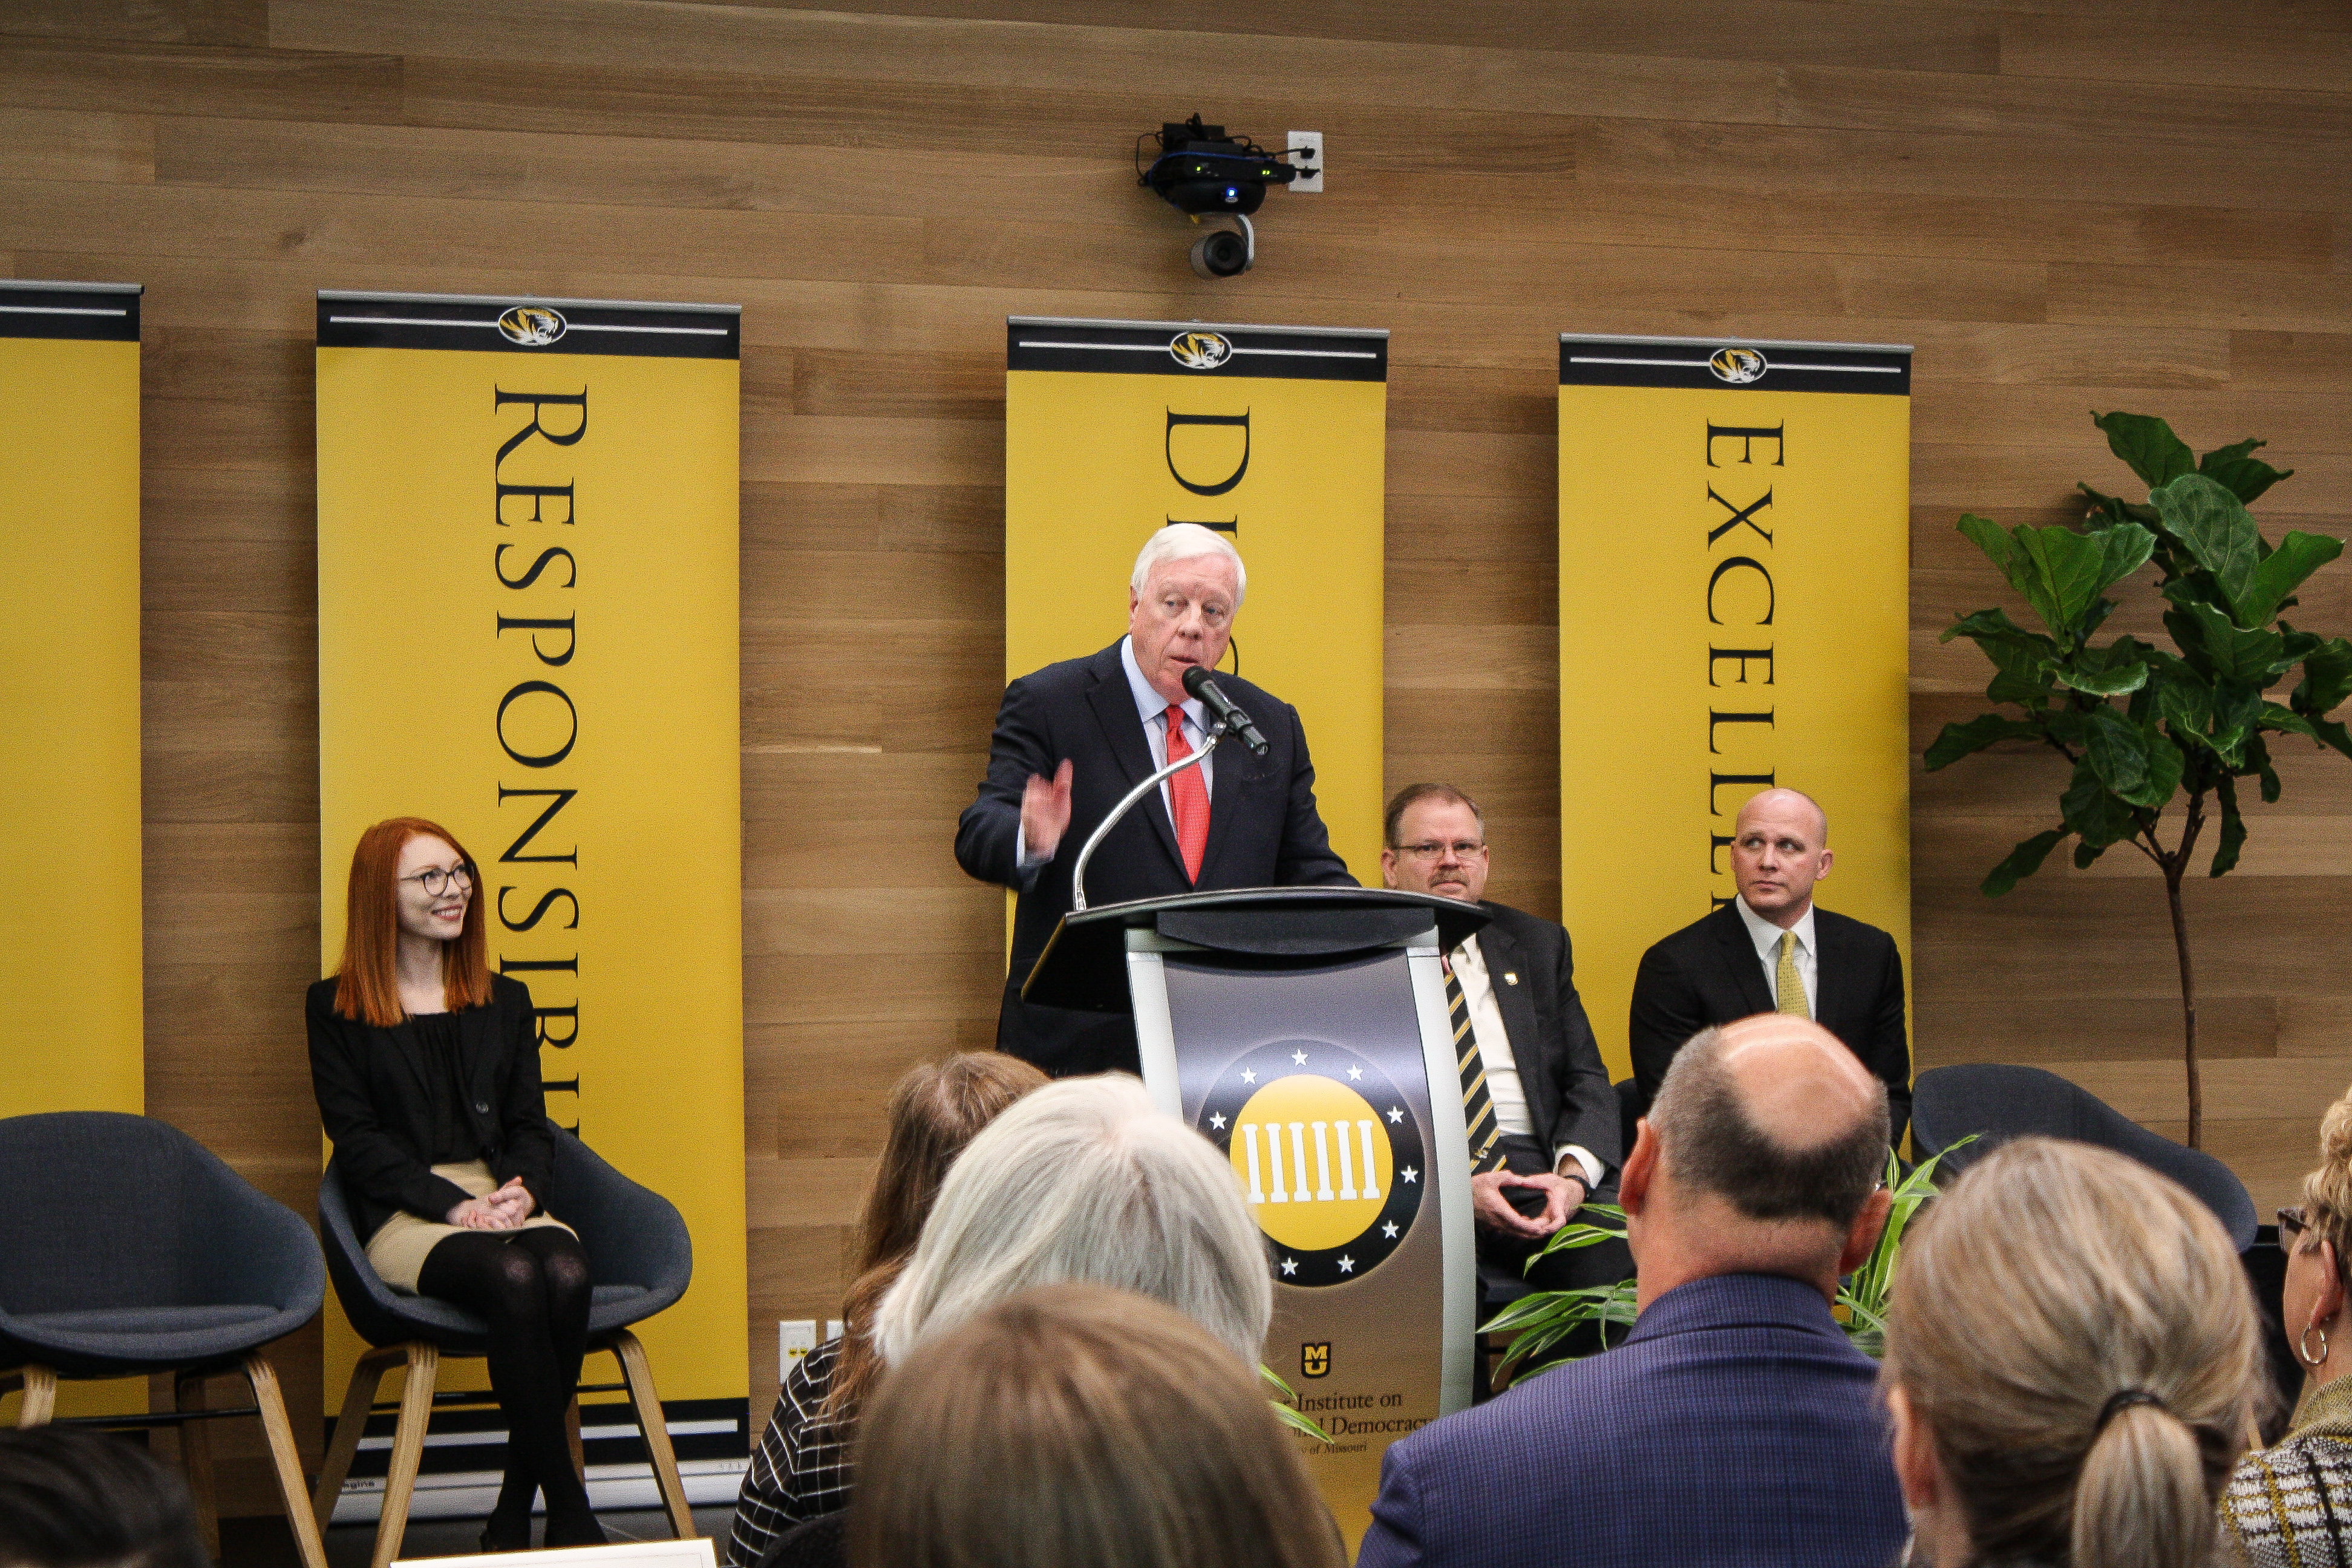 This is a picture of Rich Kinder speaking during the press conference.